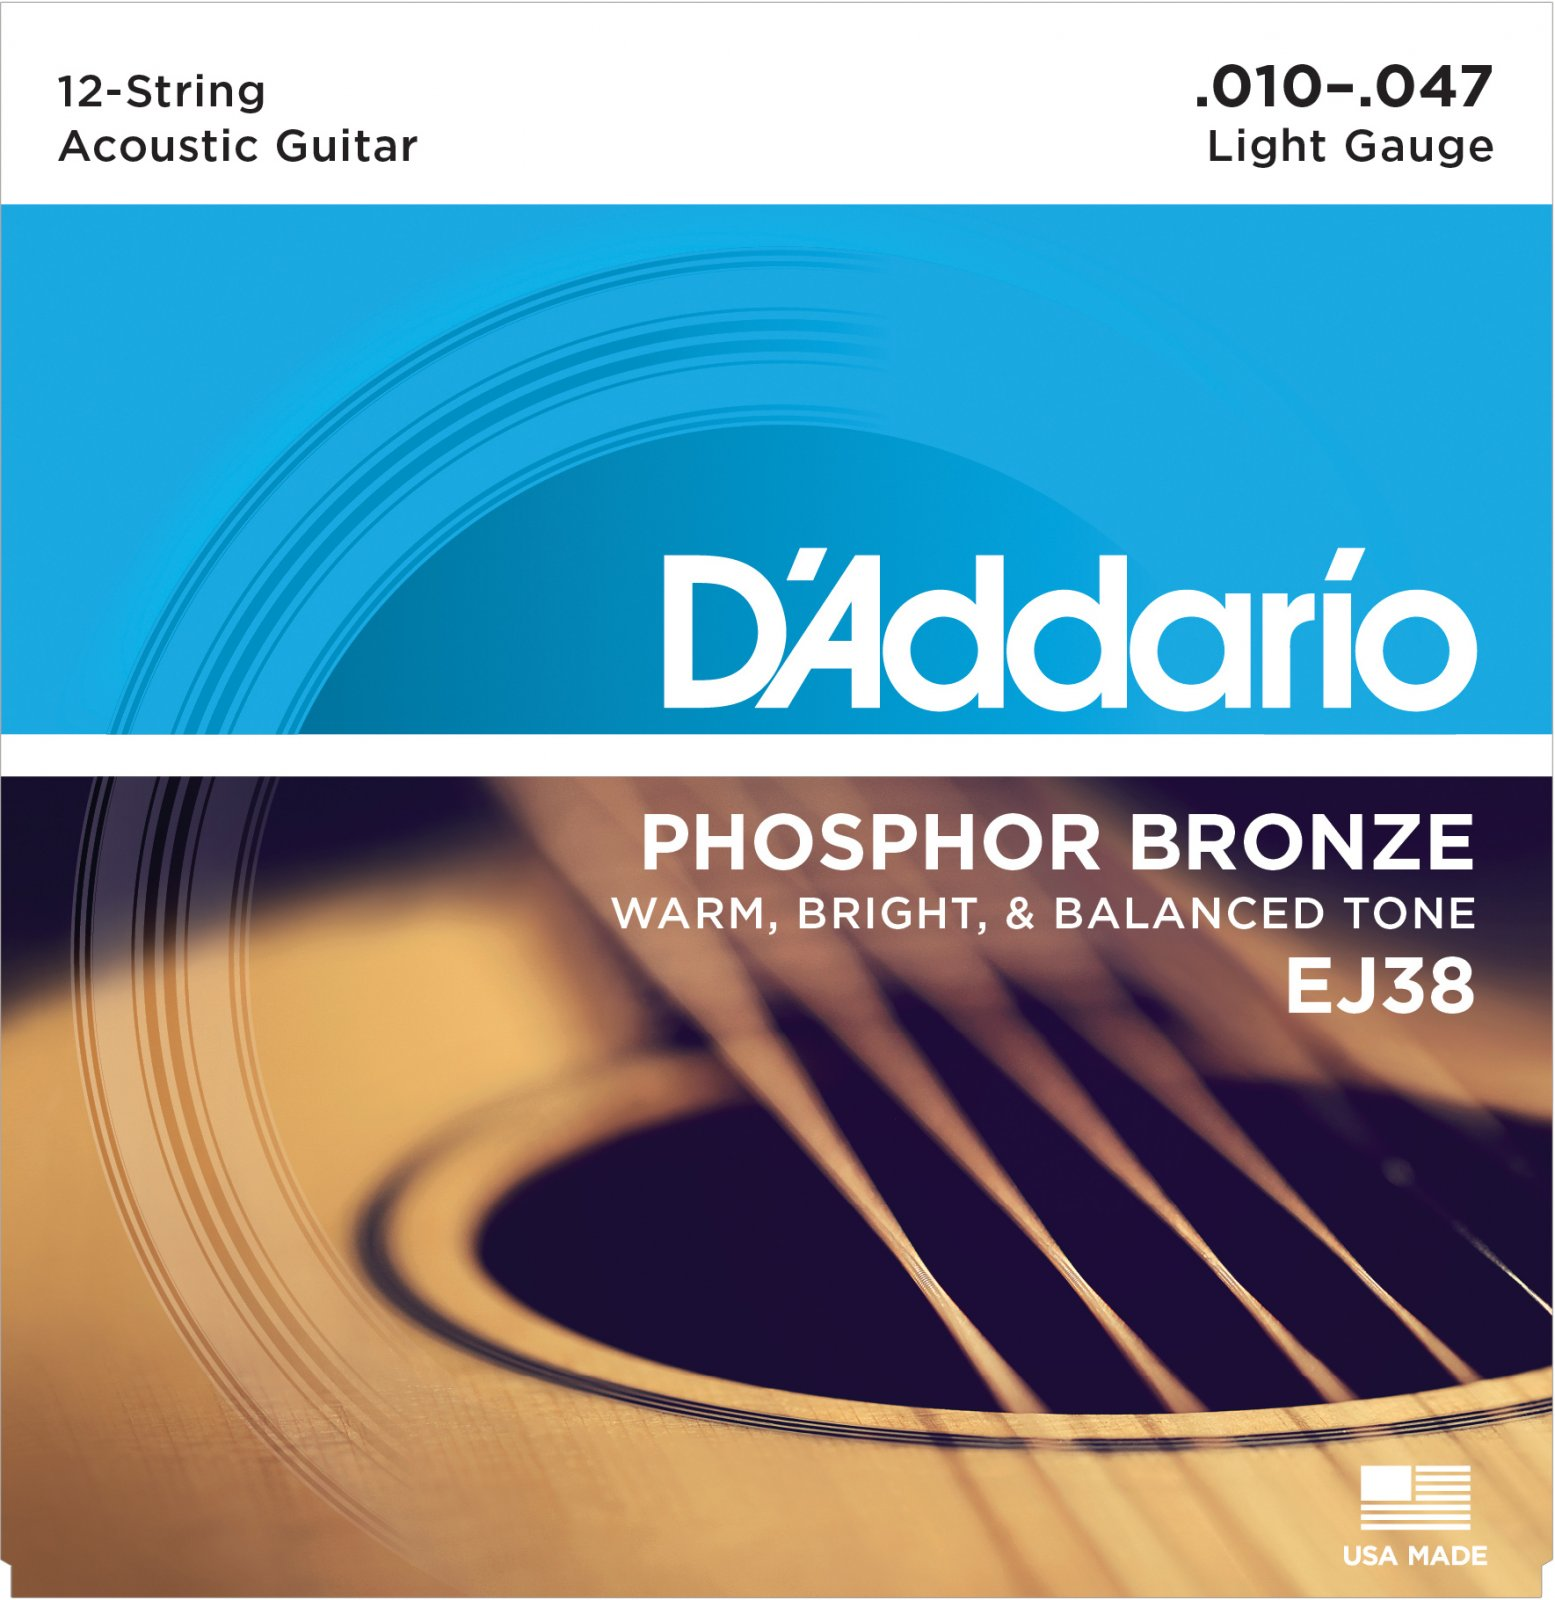 D'Addario EJ38 12-String Phosphor Bronze Acoustic Guitar Strings Light 10-47